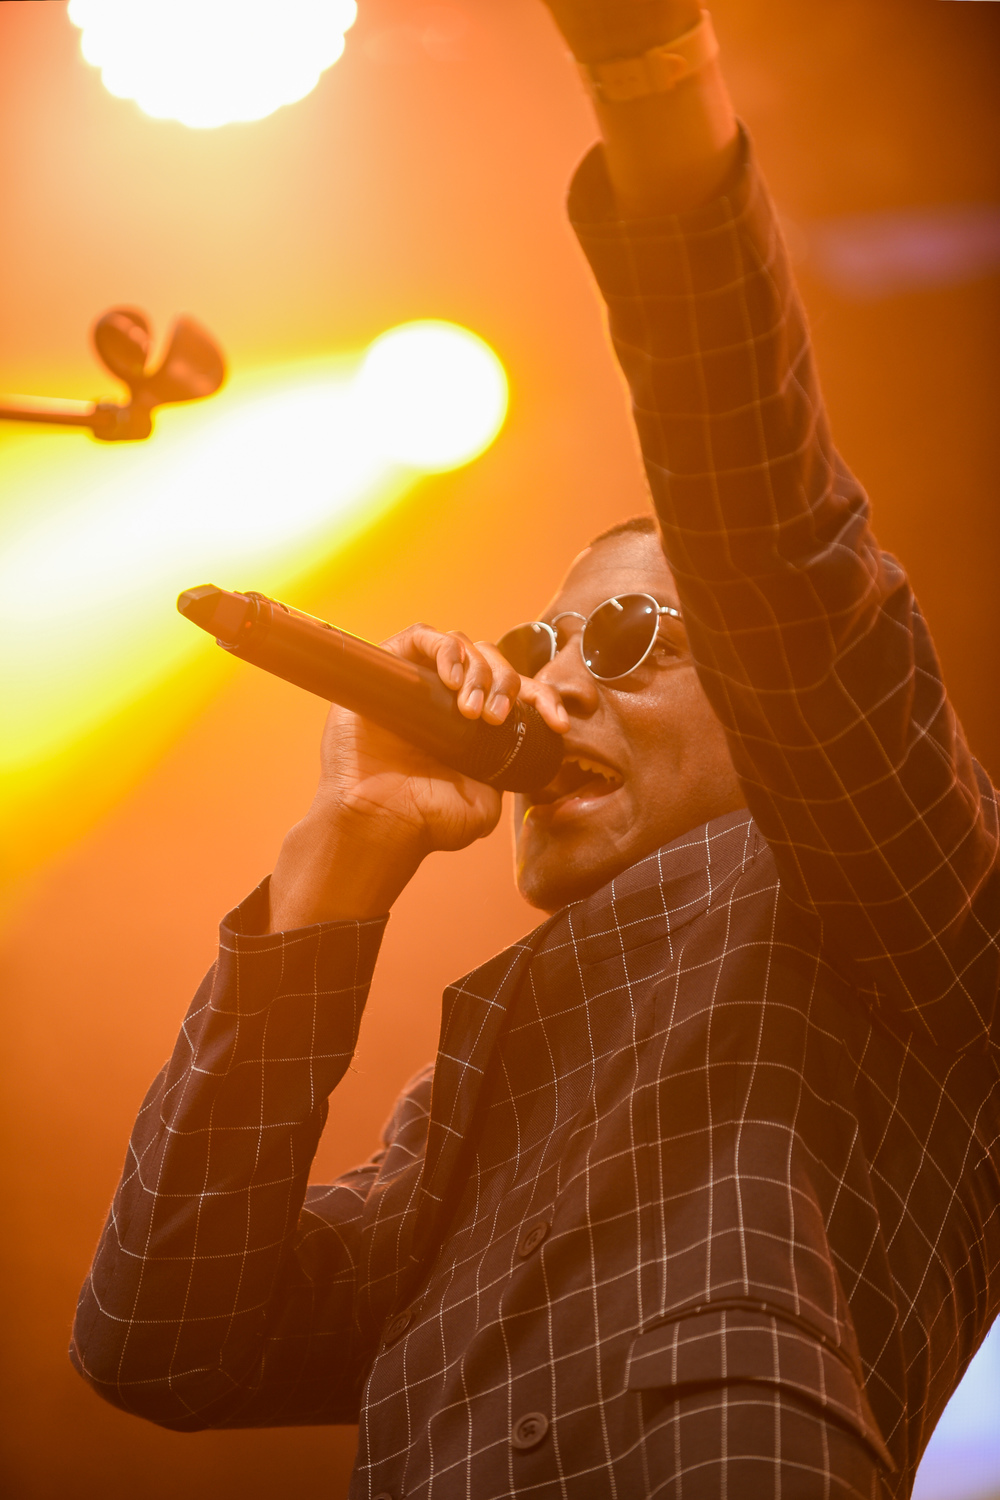 Labrinth perfroms at the Fold Festival 2016 in London's Fulham Palace